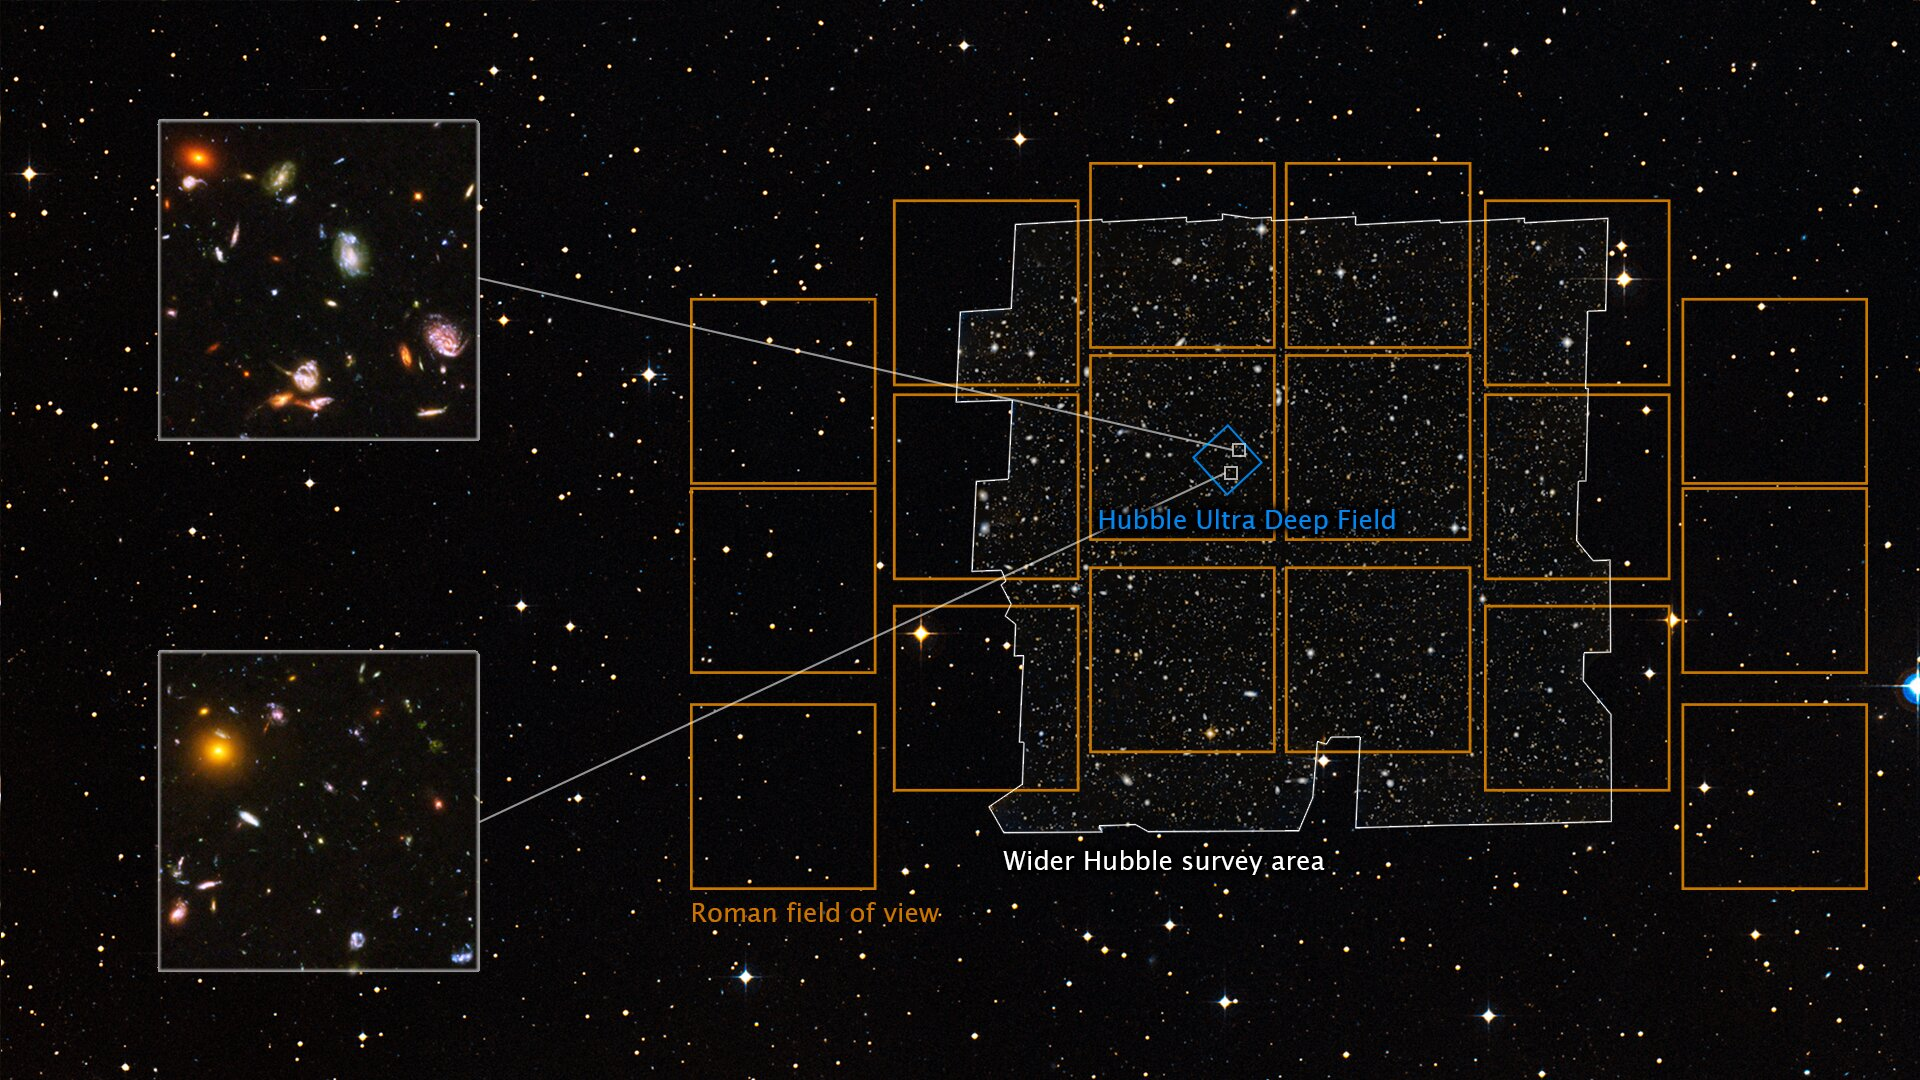 Roman Space Telescope could image 100 Hubble ultra deep fields at once